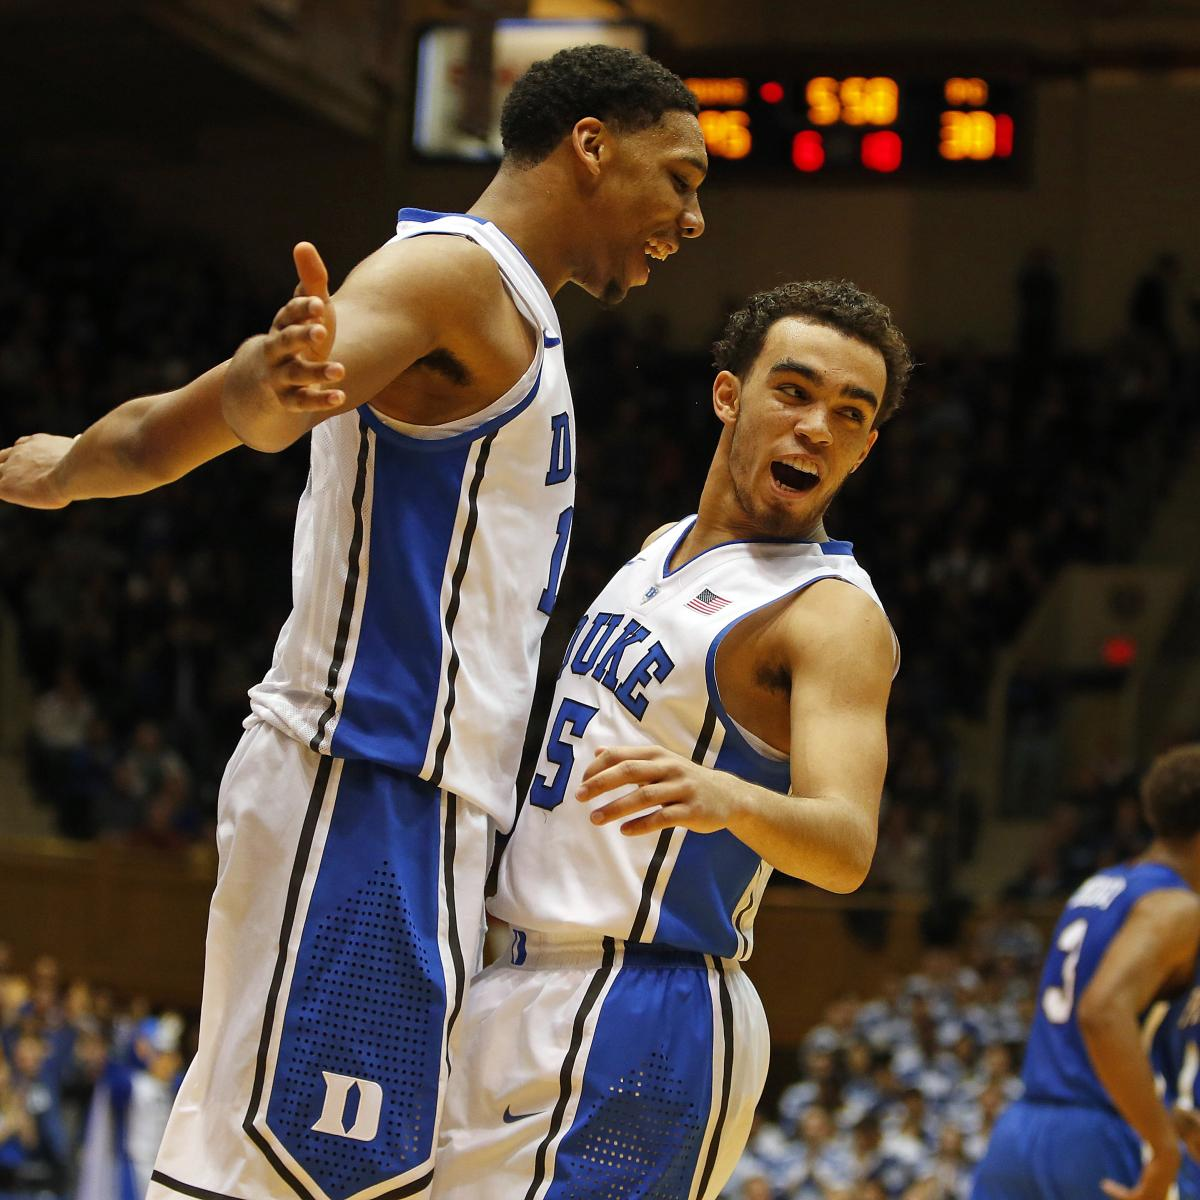 Duke Basketball Will Upcoming Road Stretch Test Blue